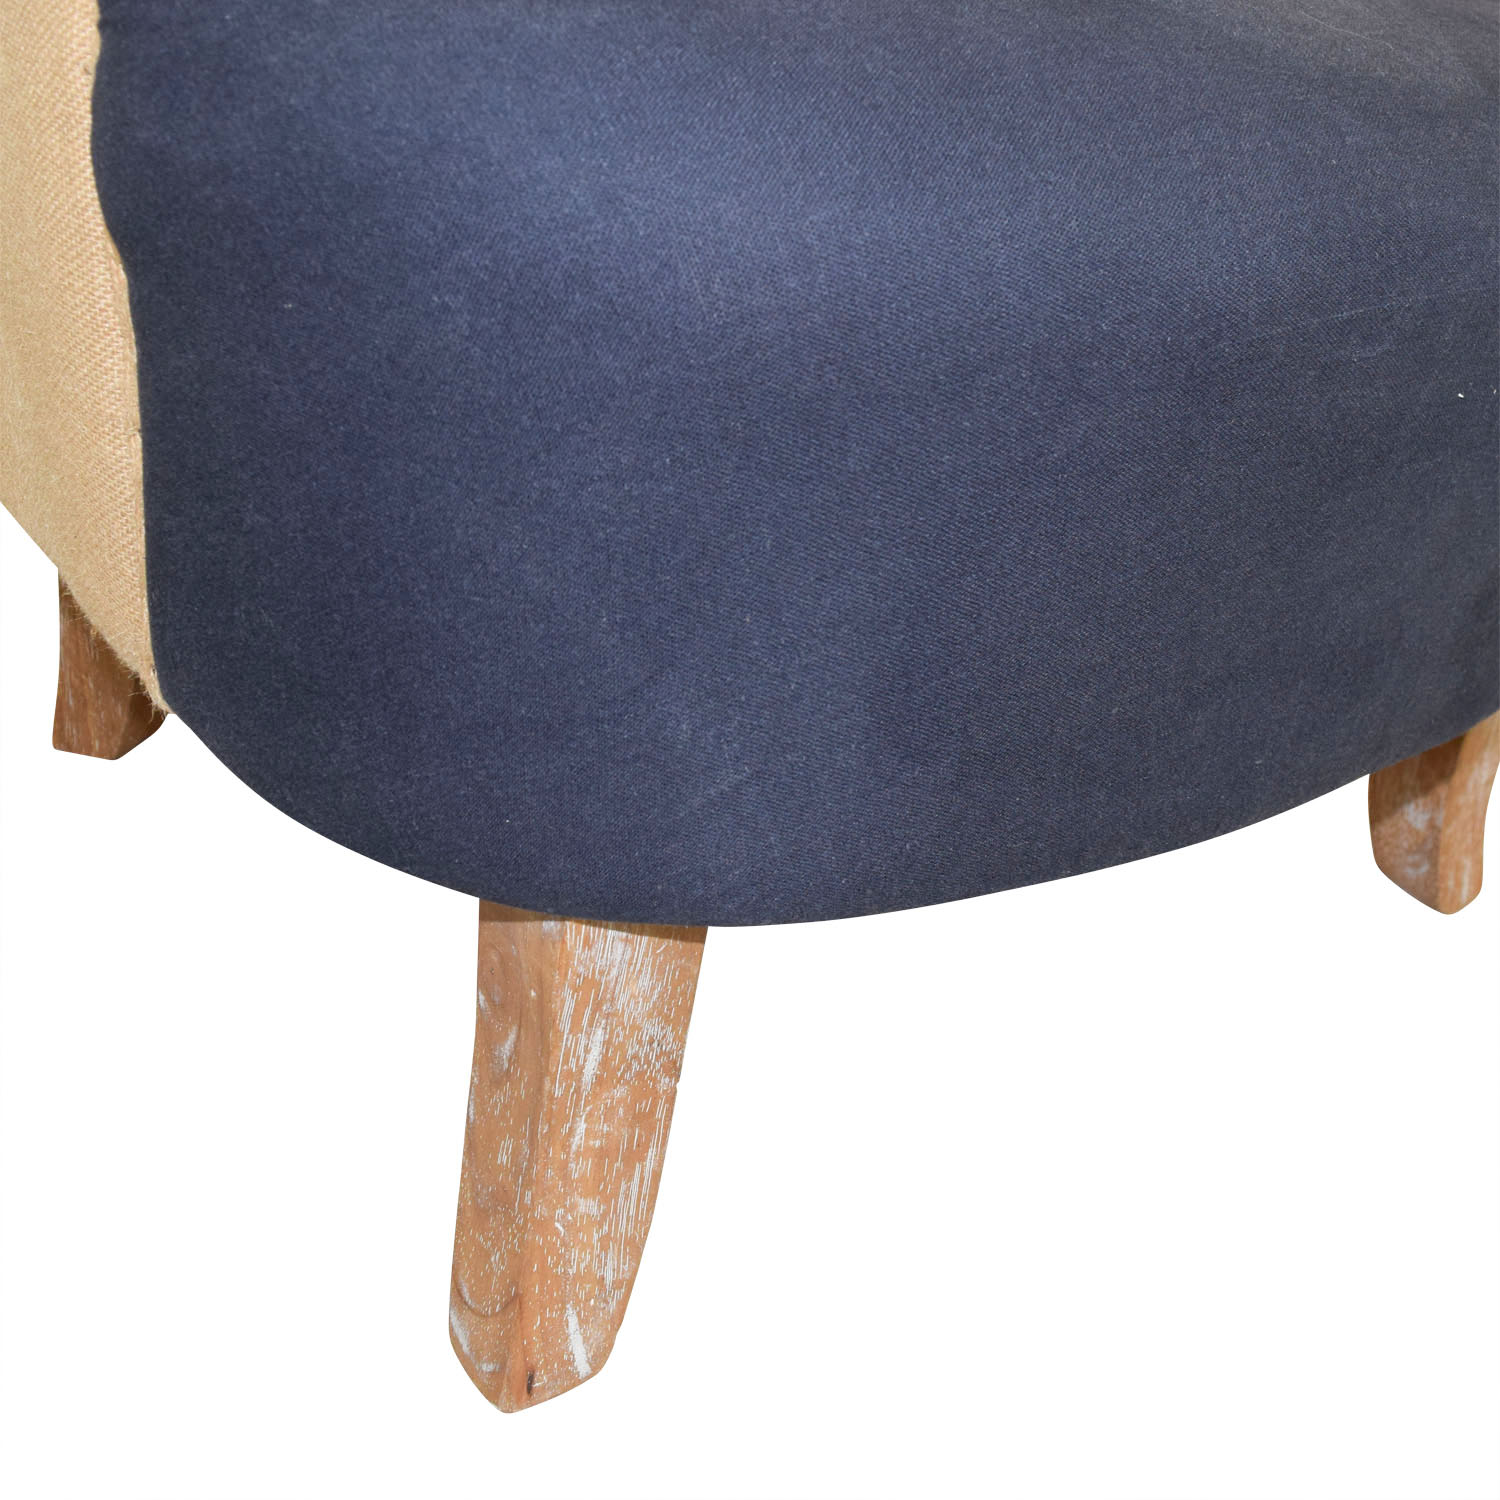 Wondrous 61 Off Pier 1 Pier 1 Imports Blue And Tan Tufted Armchair Chairs Ibusinesslaw Wood Chair Design Ideas Ibusinesslaworg